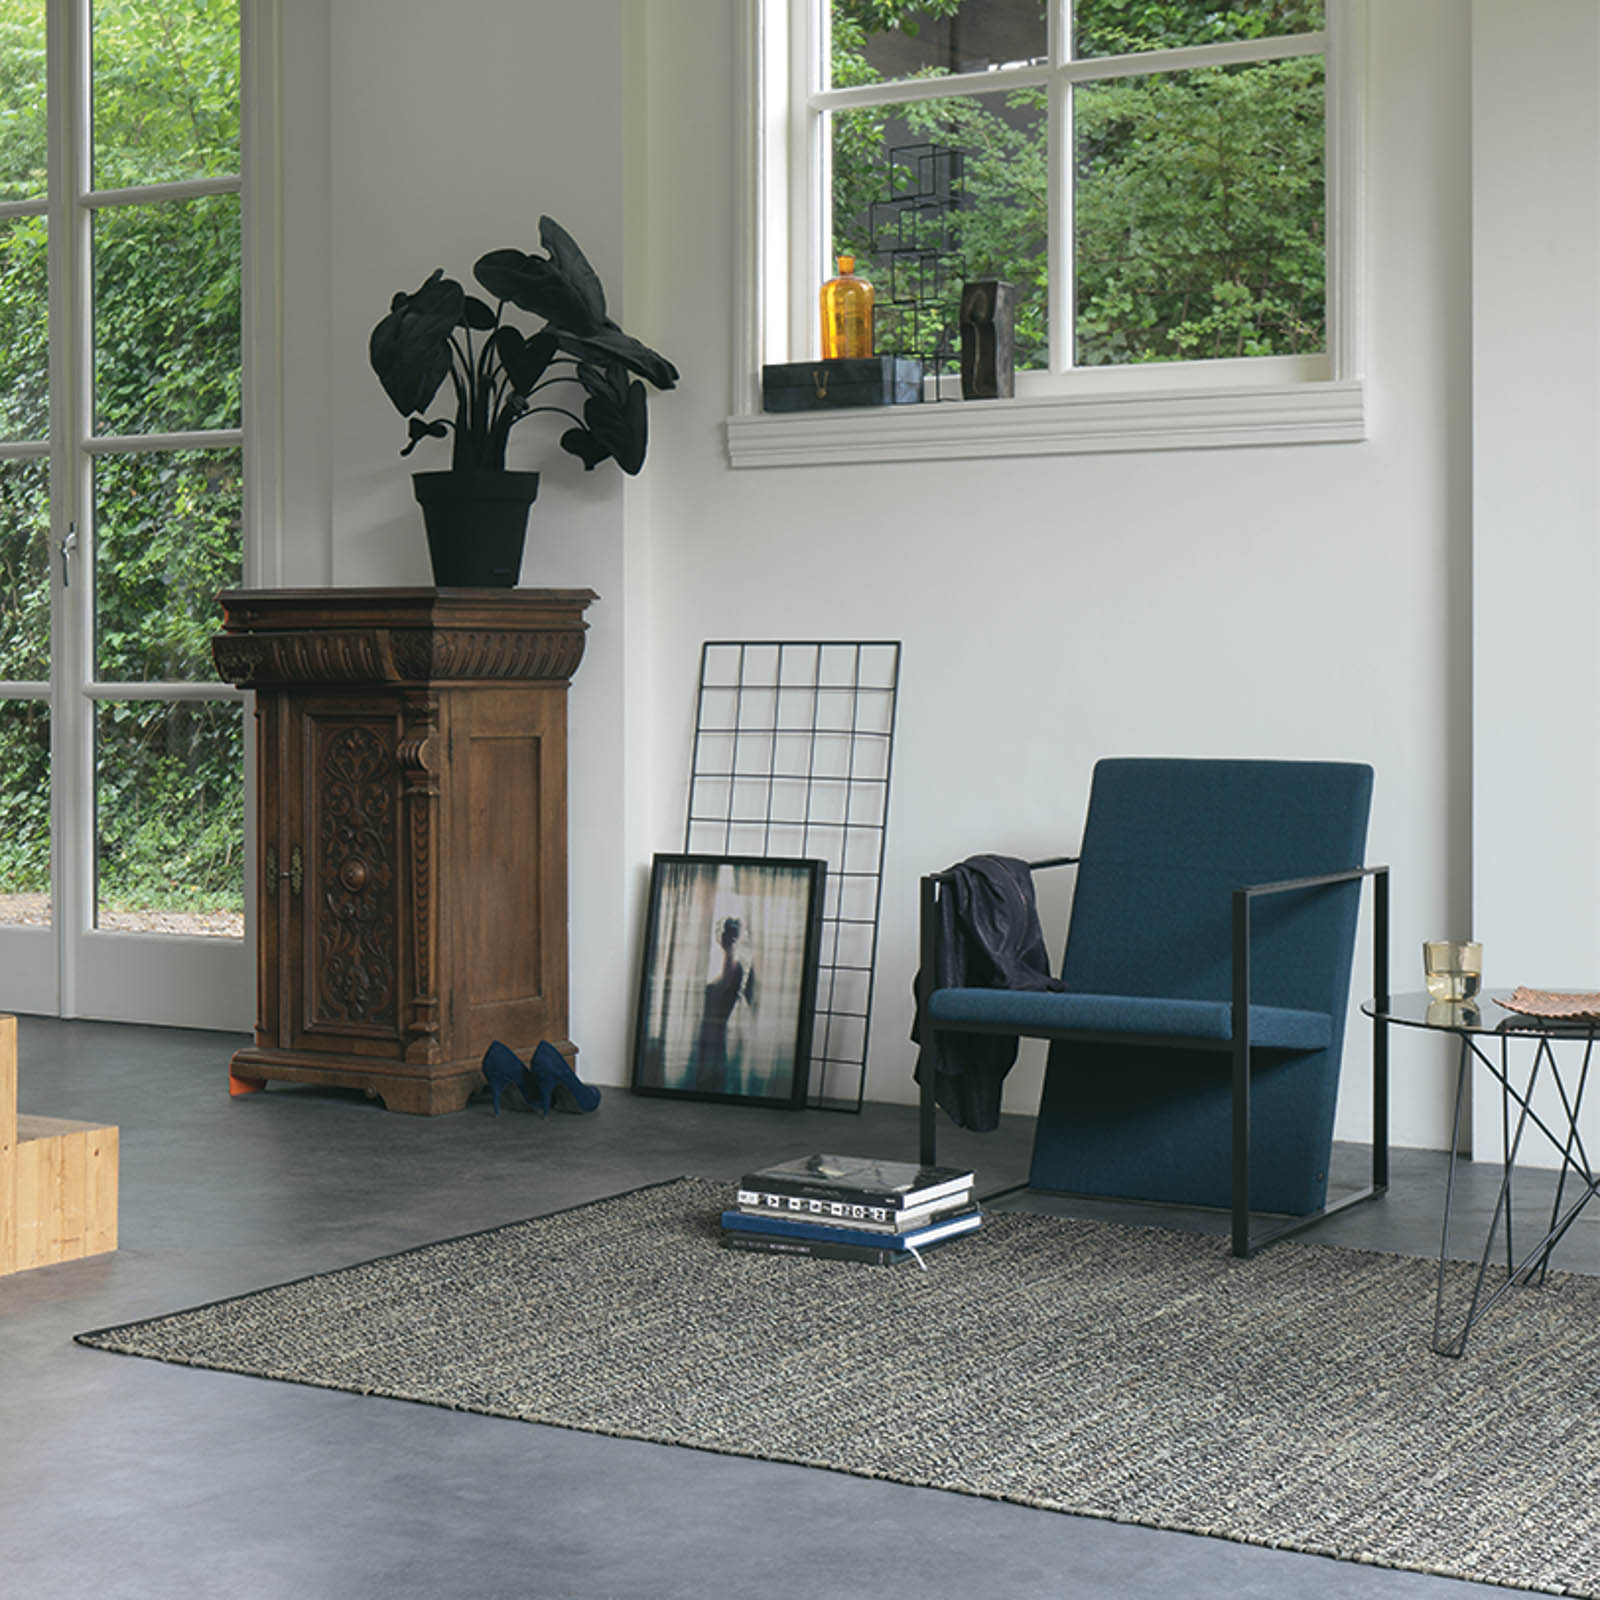 Tribe Flatweave Rugs by Brink and Campman